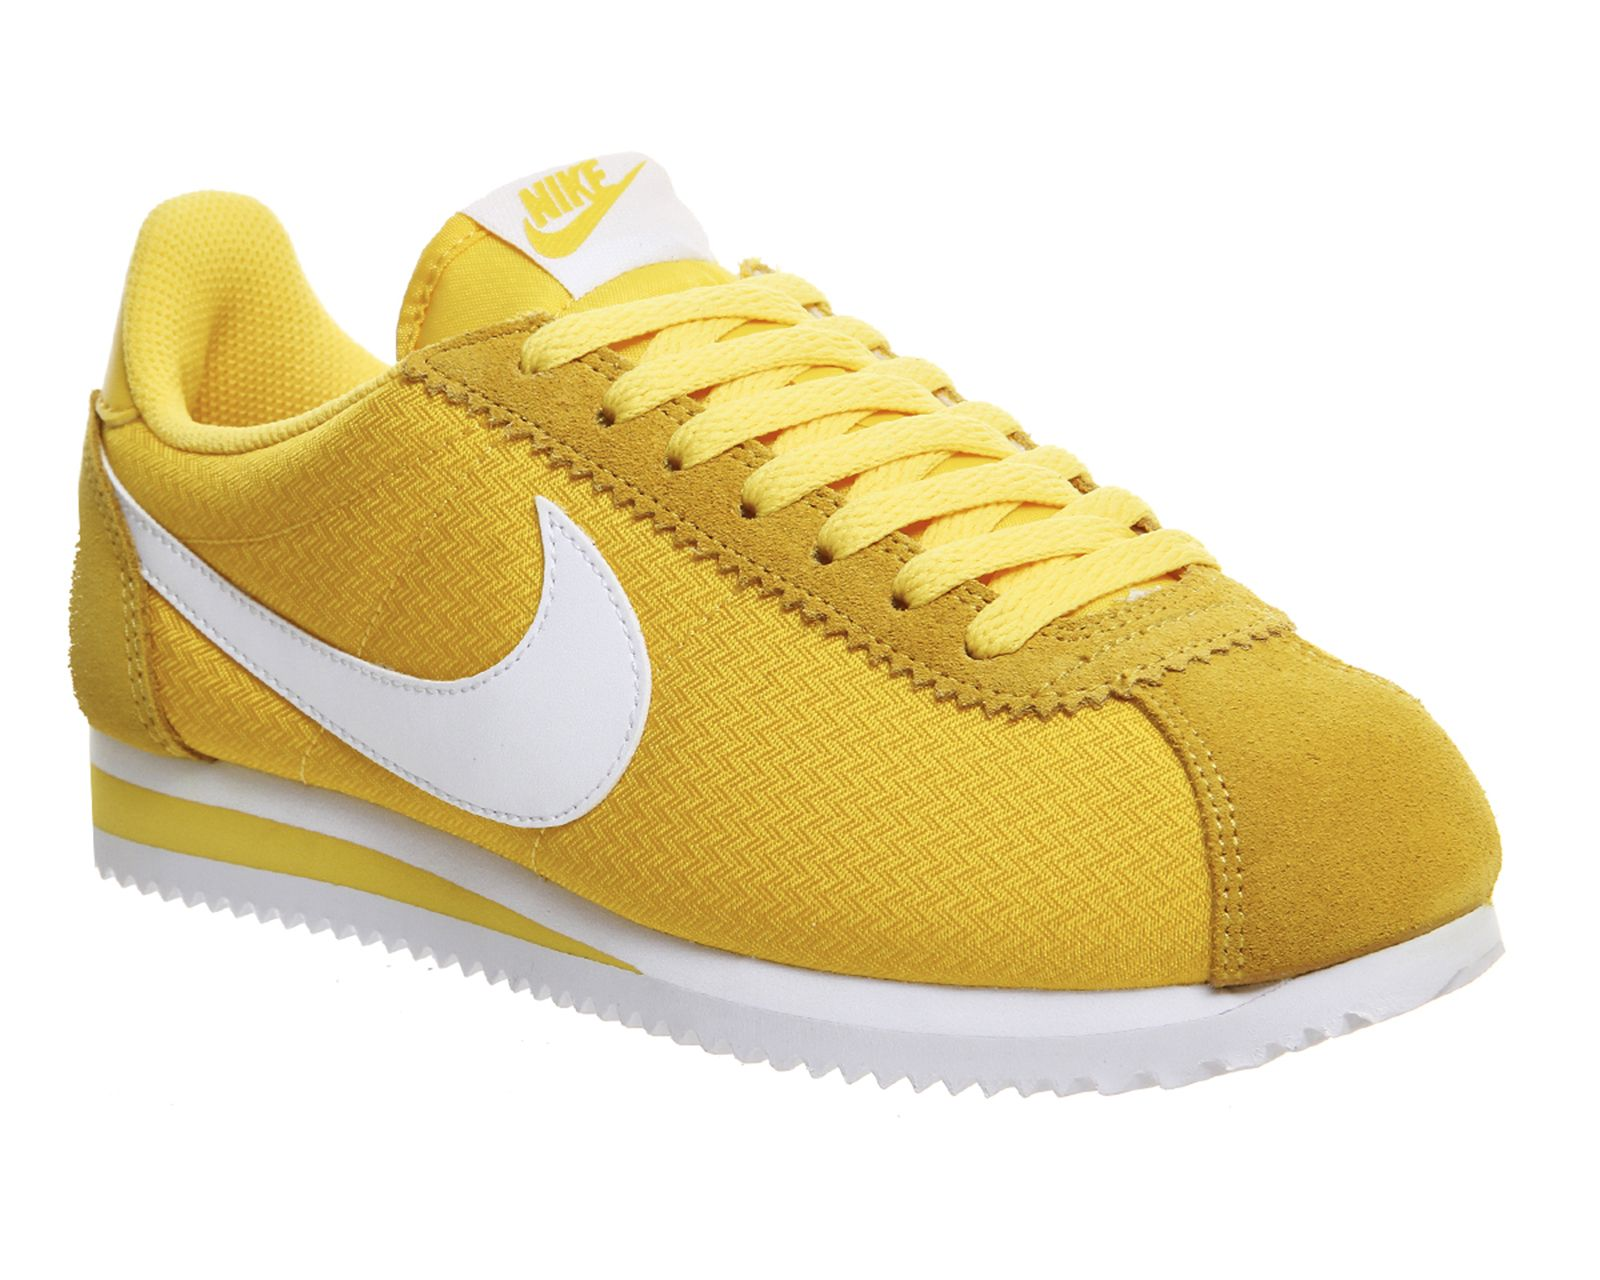 separation shoes bd15c ffee0 Buy Varsity Maize White Nike Cortez Nylon from OFFICE.co.uk.